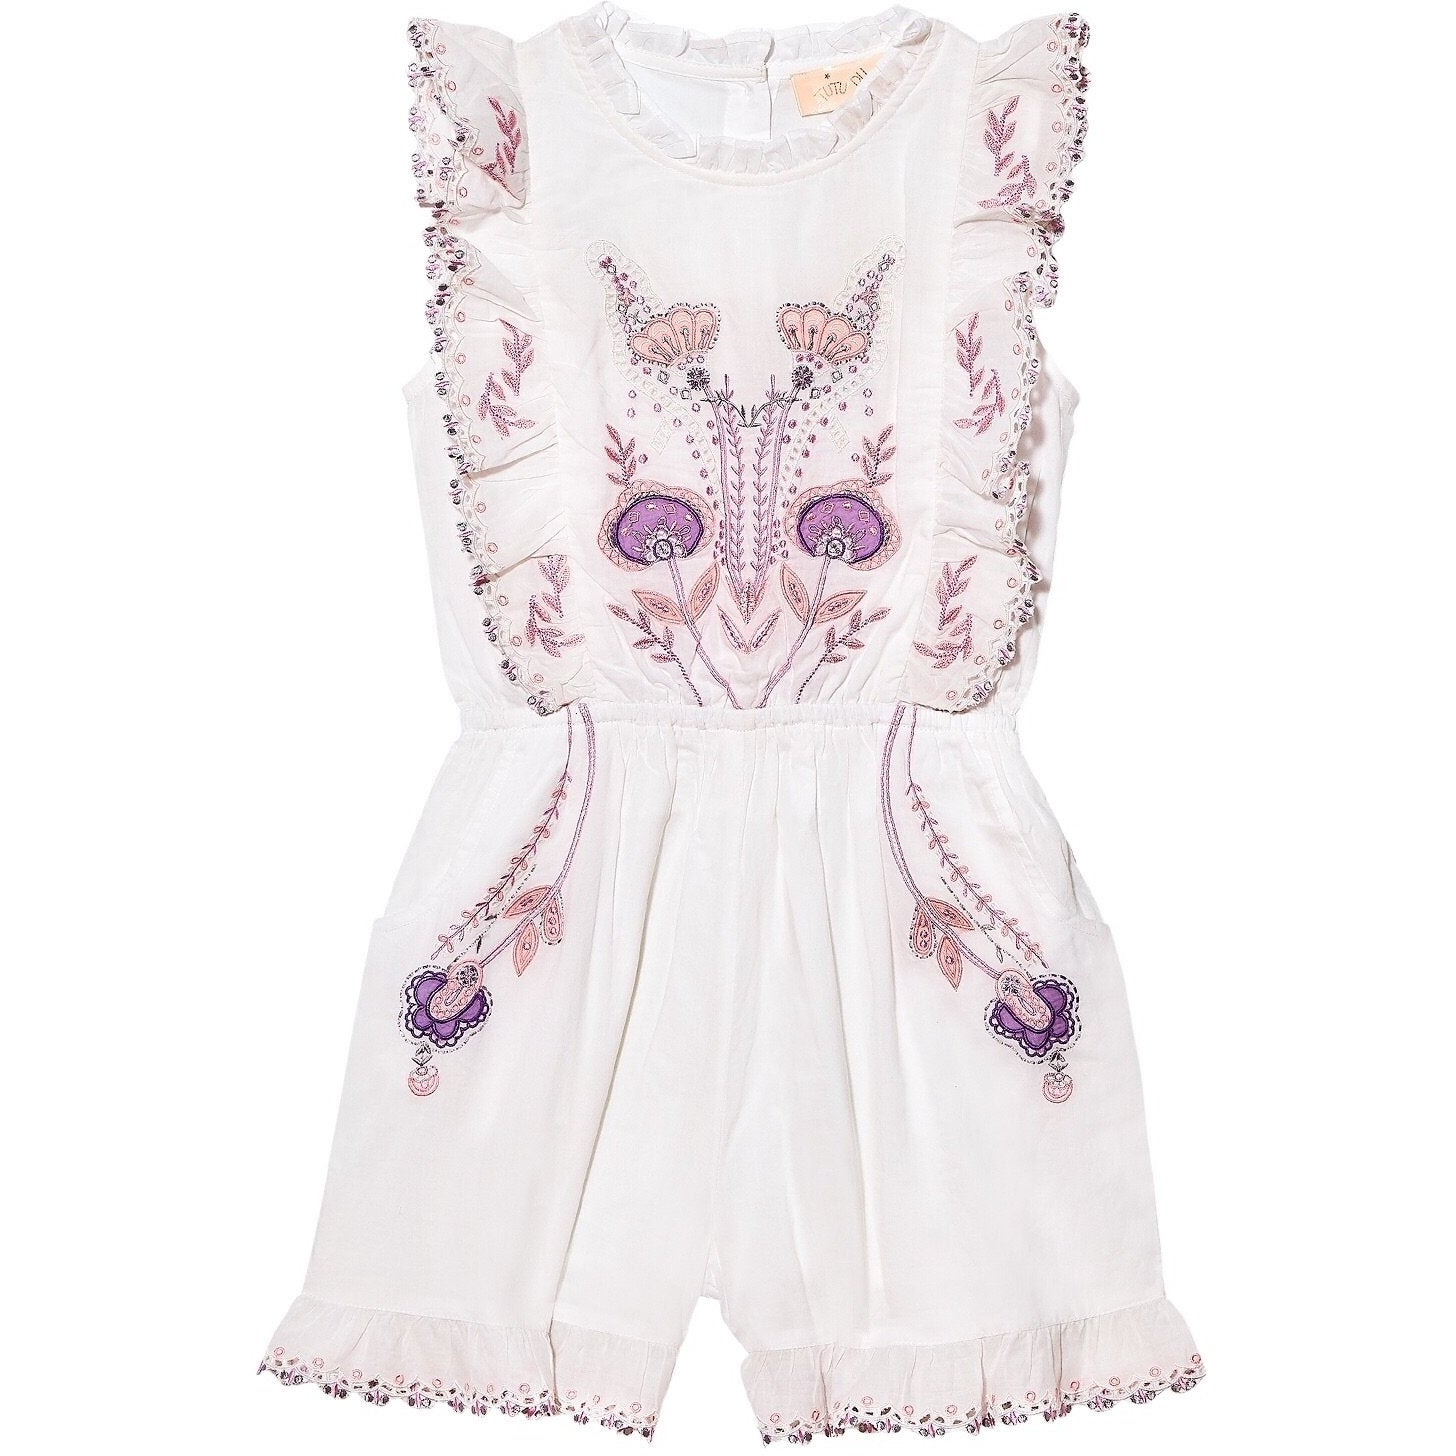 Musical Moment Playsuit - Tutu du Monde